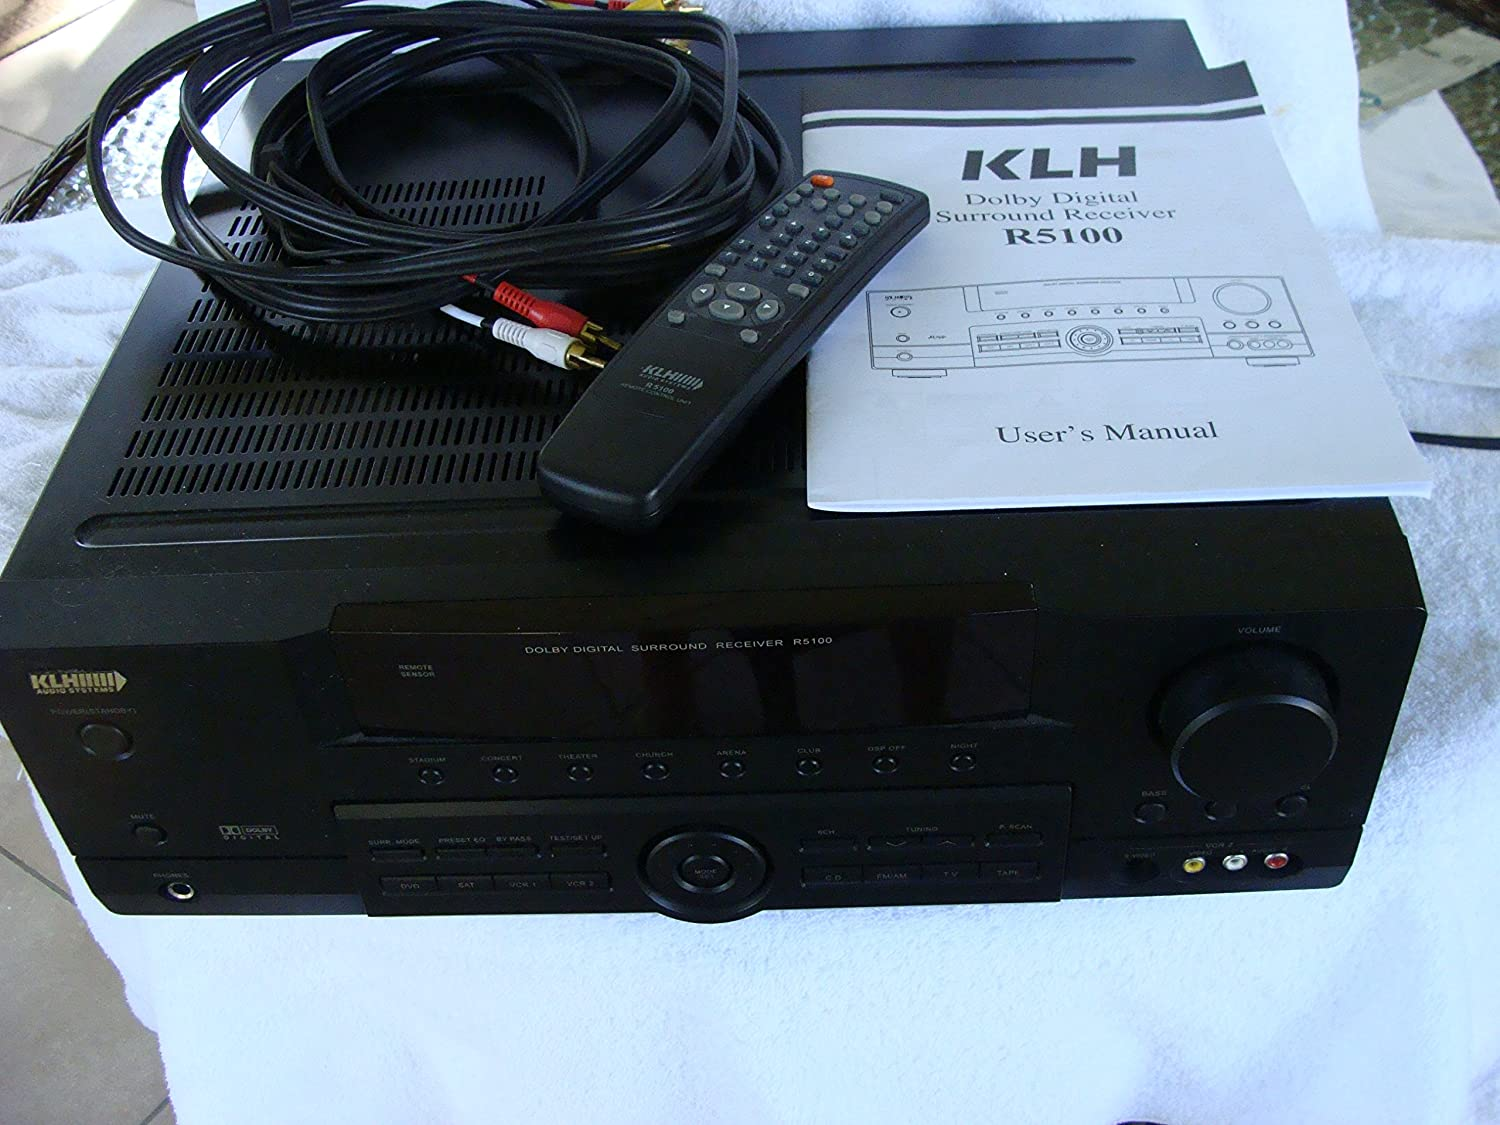 Klh r5100 surround sound receiver w/ manual, remote & cable n5.